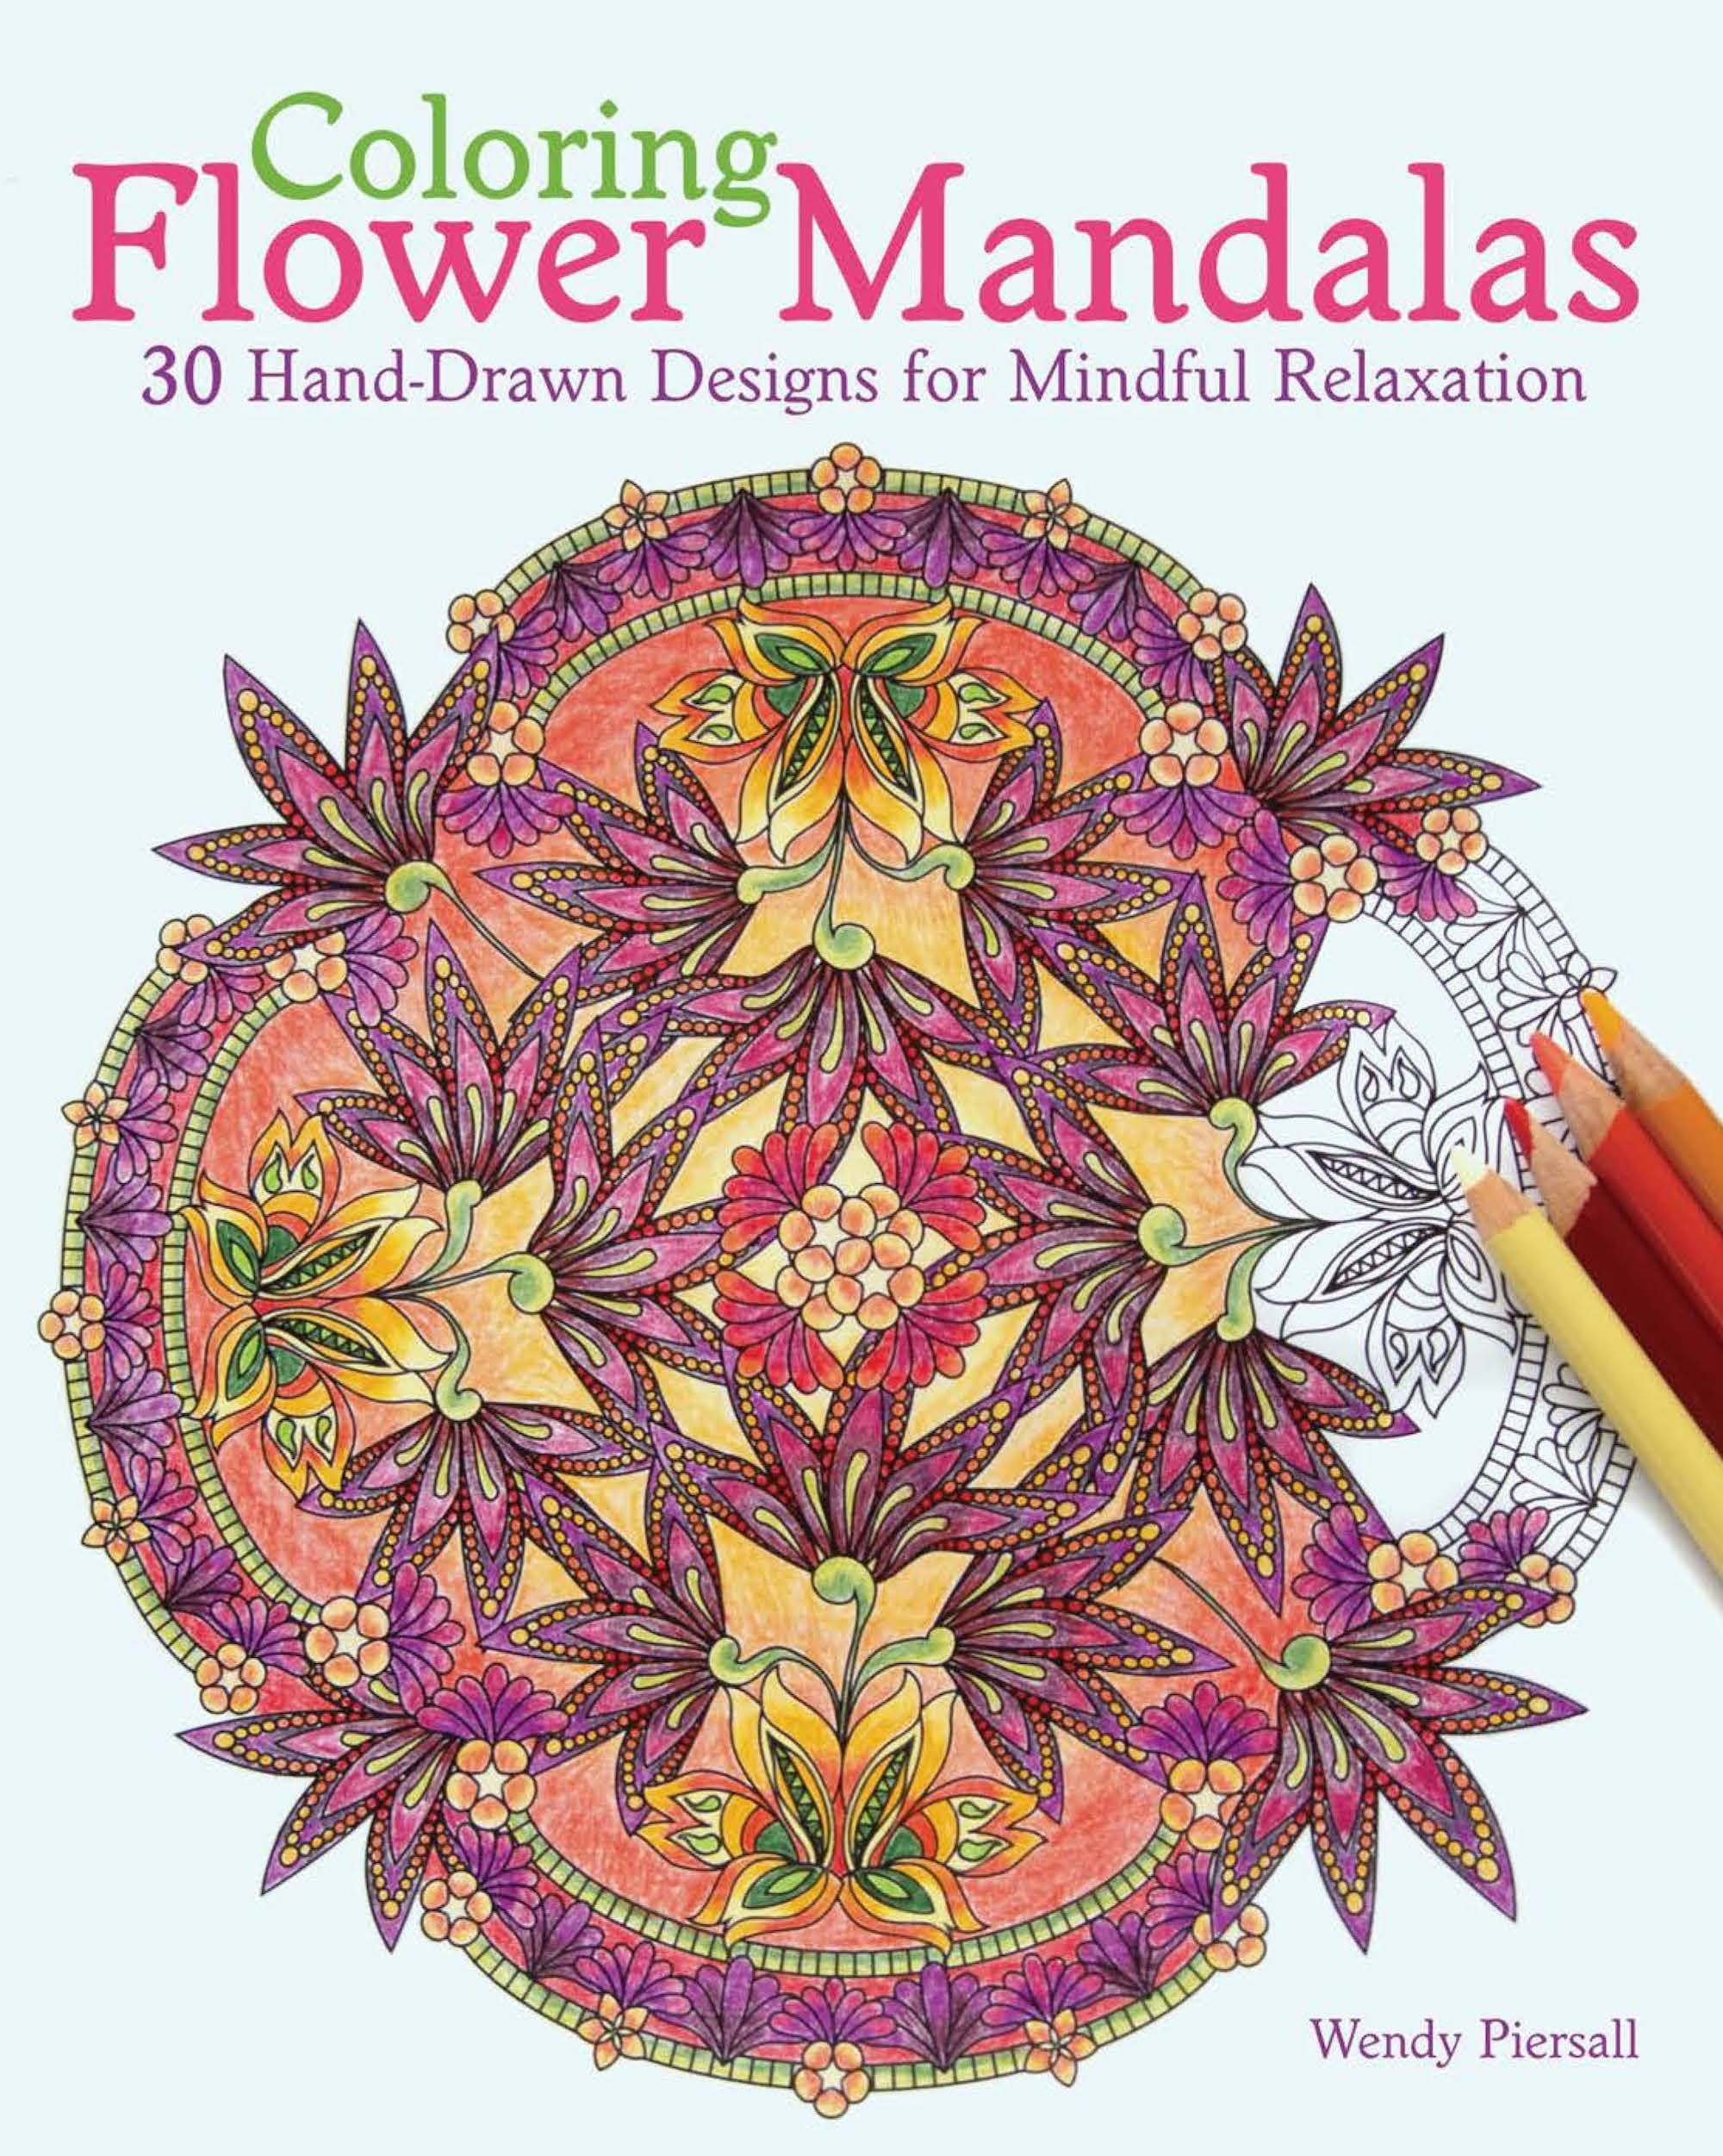 Amazon Coloring Flower Mandalas 30 Hand Drawn Designs For Mindful Relaxation 9781612434575 Wendy Piersall Books